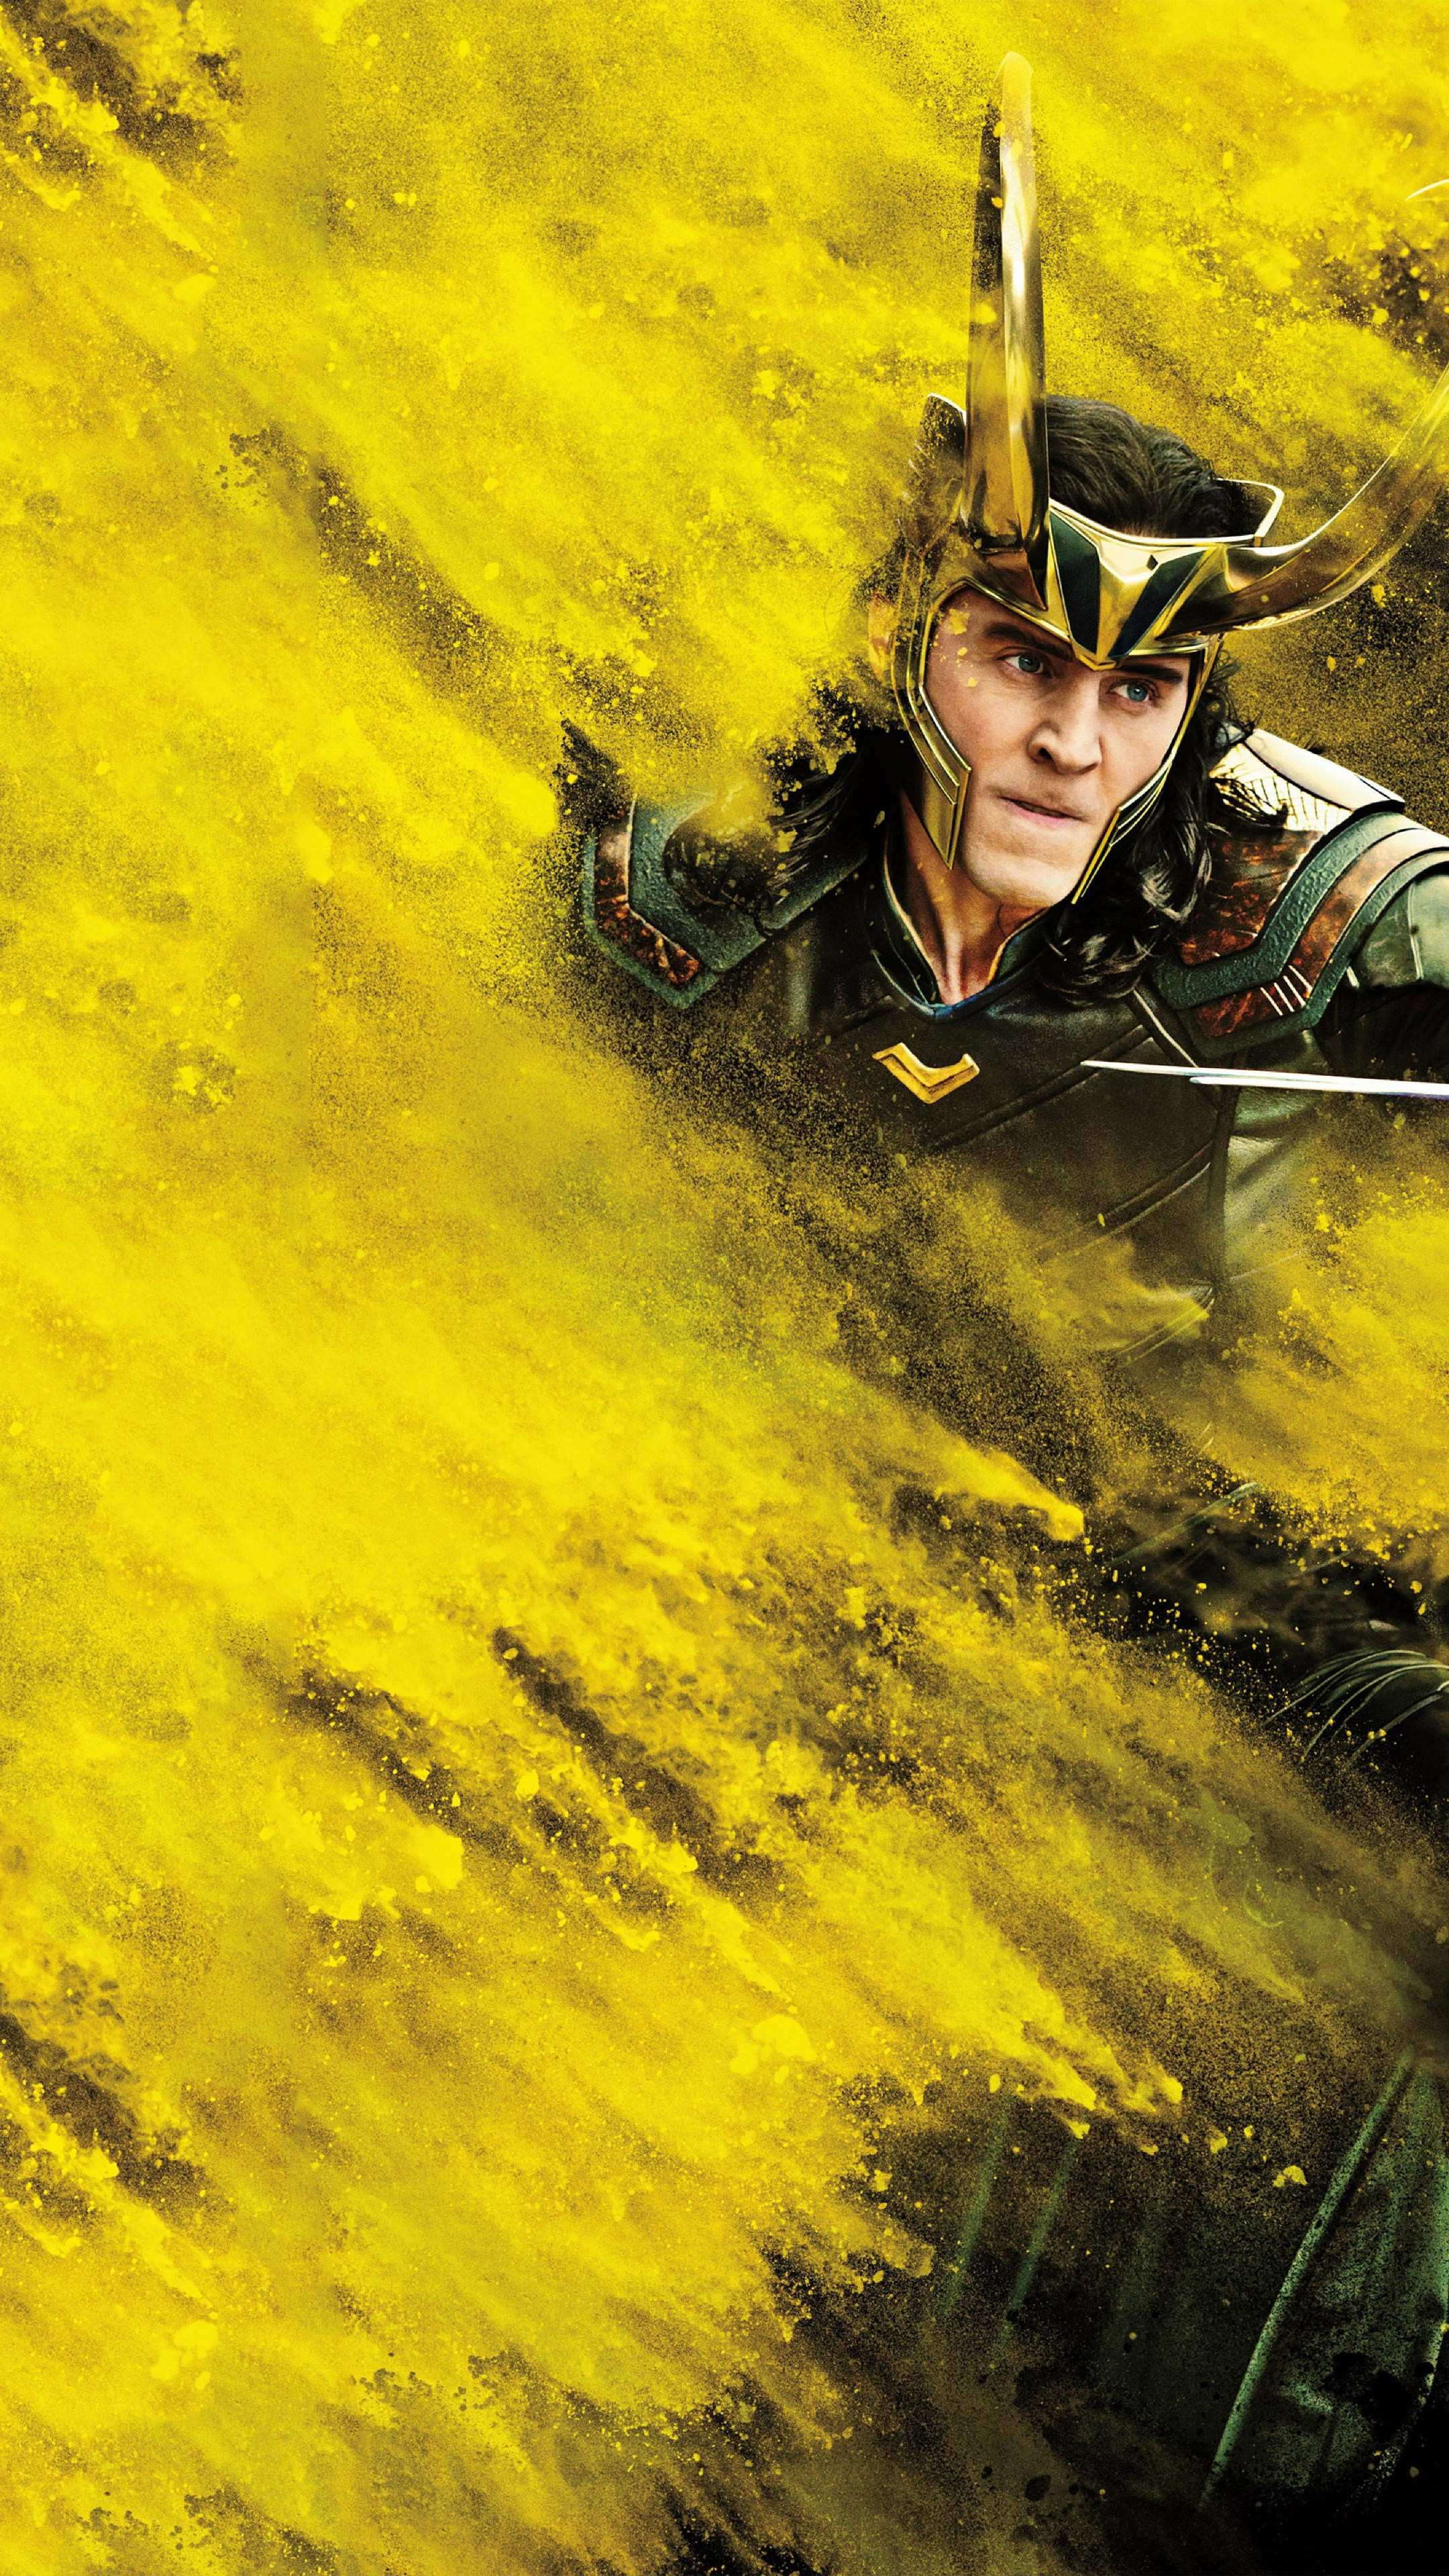 Loki iphone wallpapers top free loki iphone backgrounds - Loki phone wallpaper ...